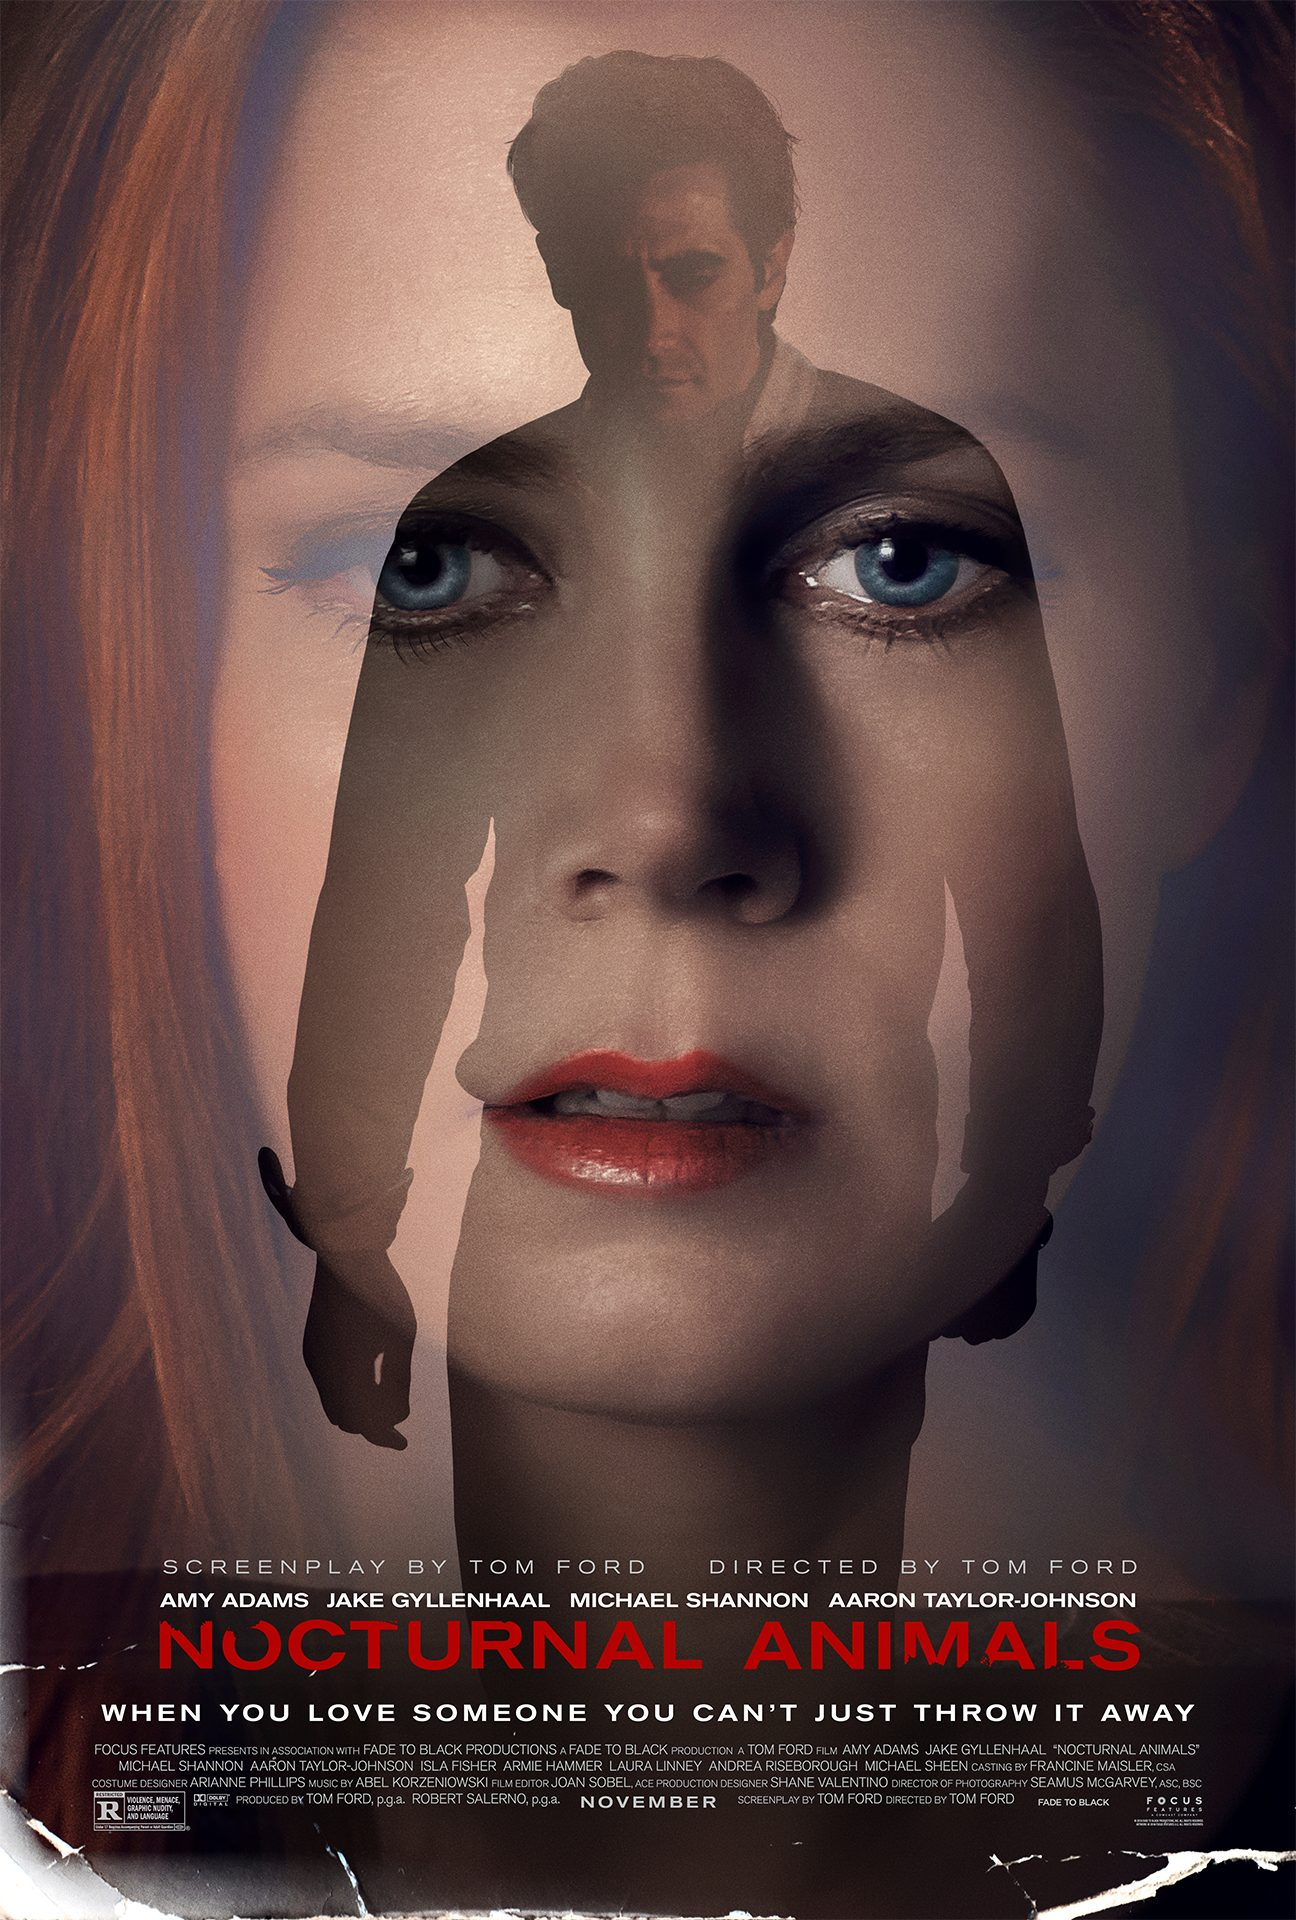 Official 'Nocturnal Animals' Movie Poster